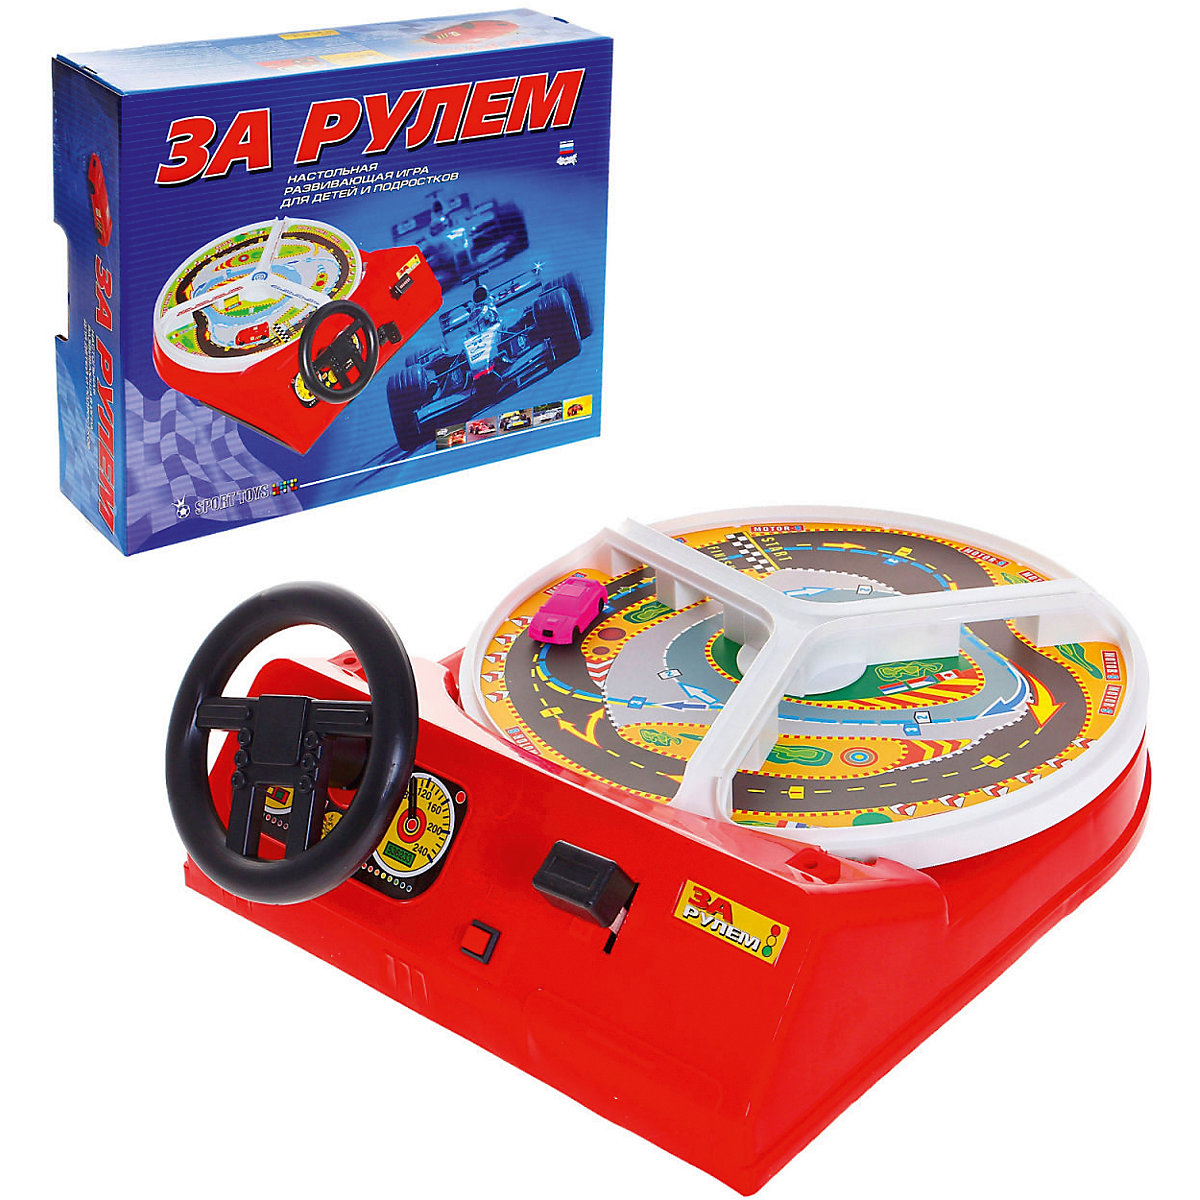 Game Room Omskiy Zavod Elektrotovarov 7766969 Toys Board Game Children's Educational Games Roomfor Boys Girls